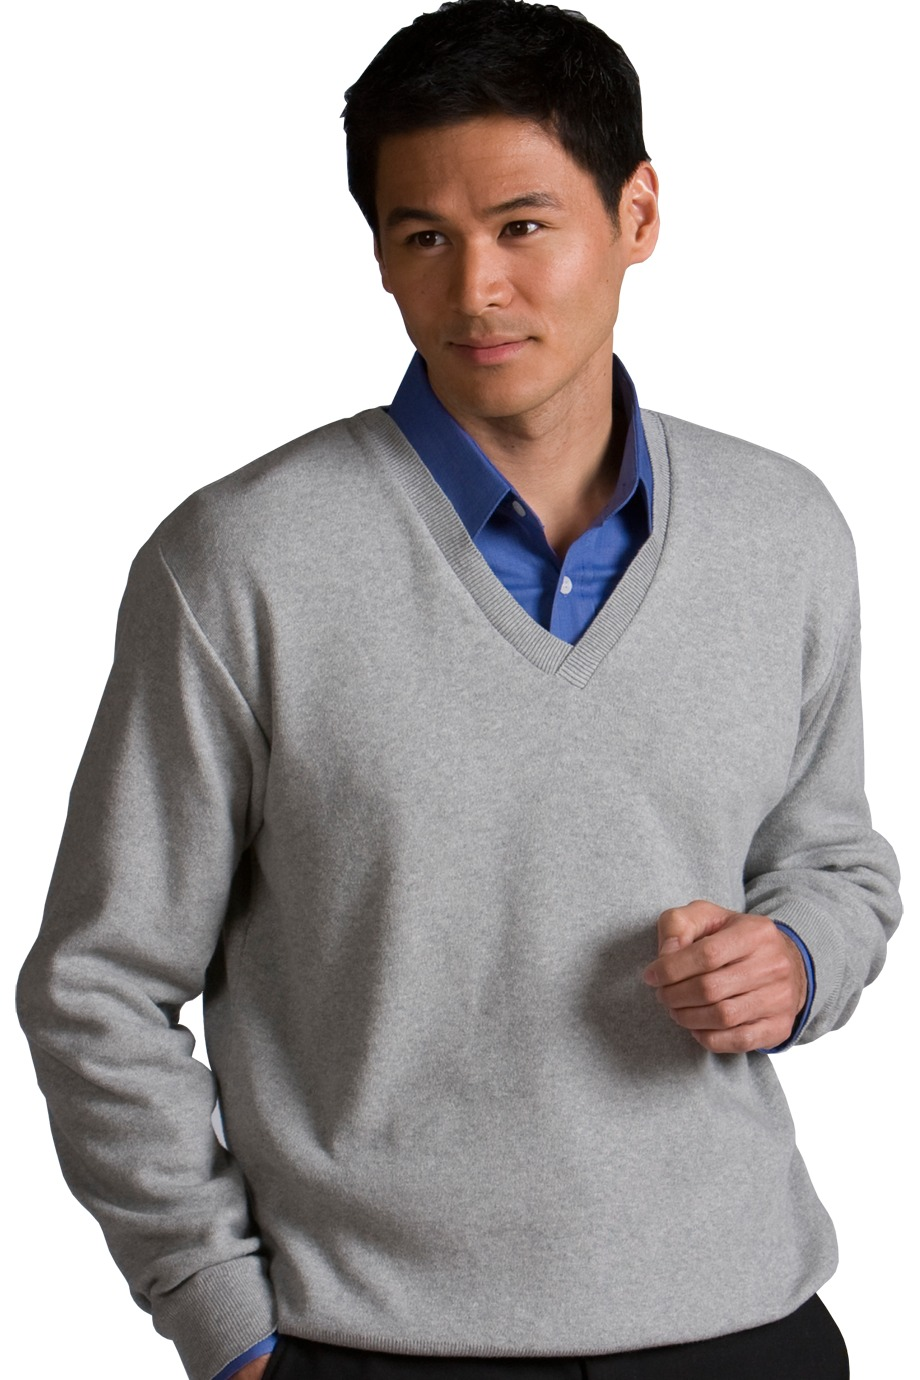 Edwards Garment 700 - Men's Cotton Cashmere V-Neck Sweater $23.98 ...